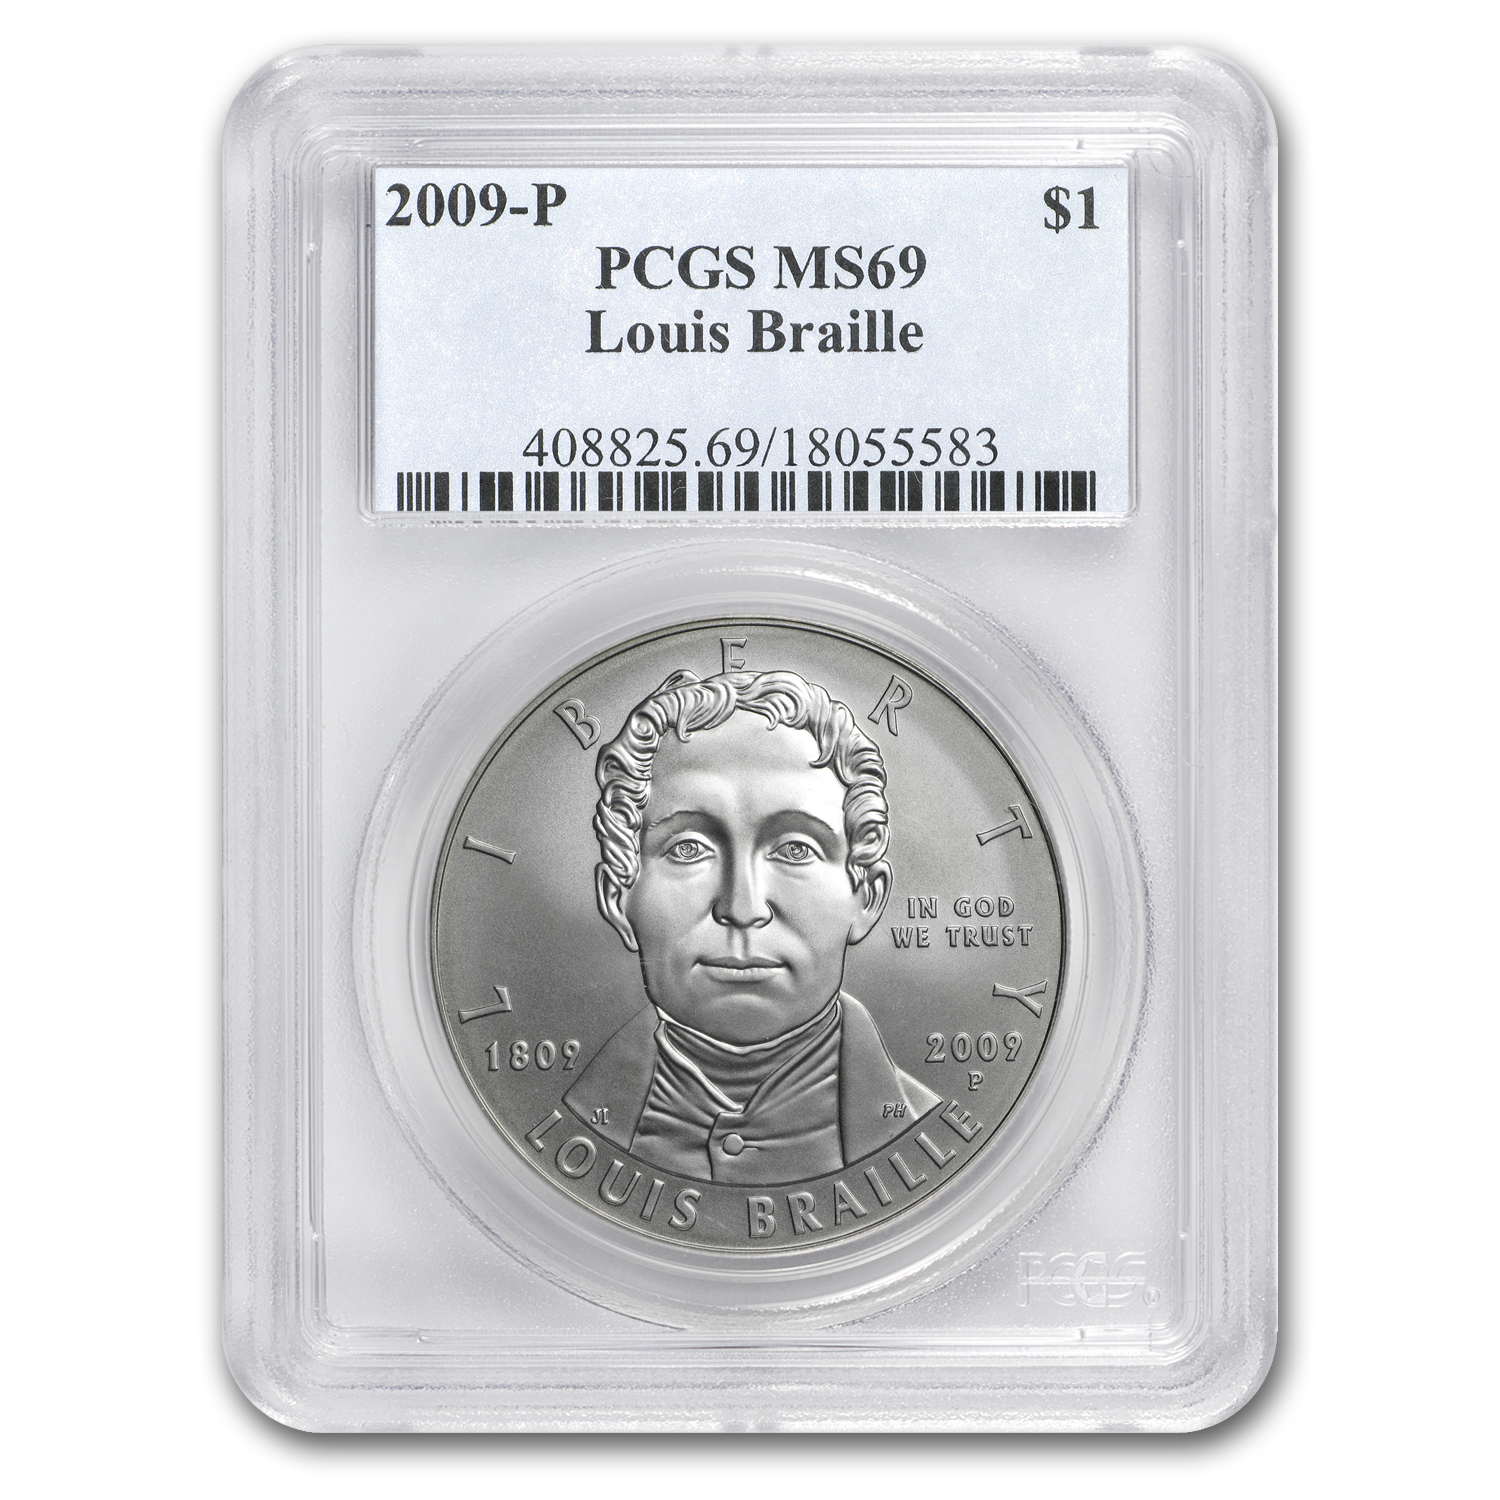 2009-P Louis Braille $1 Silver Commem MS-69 PCGS